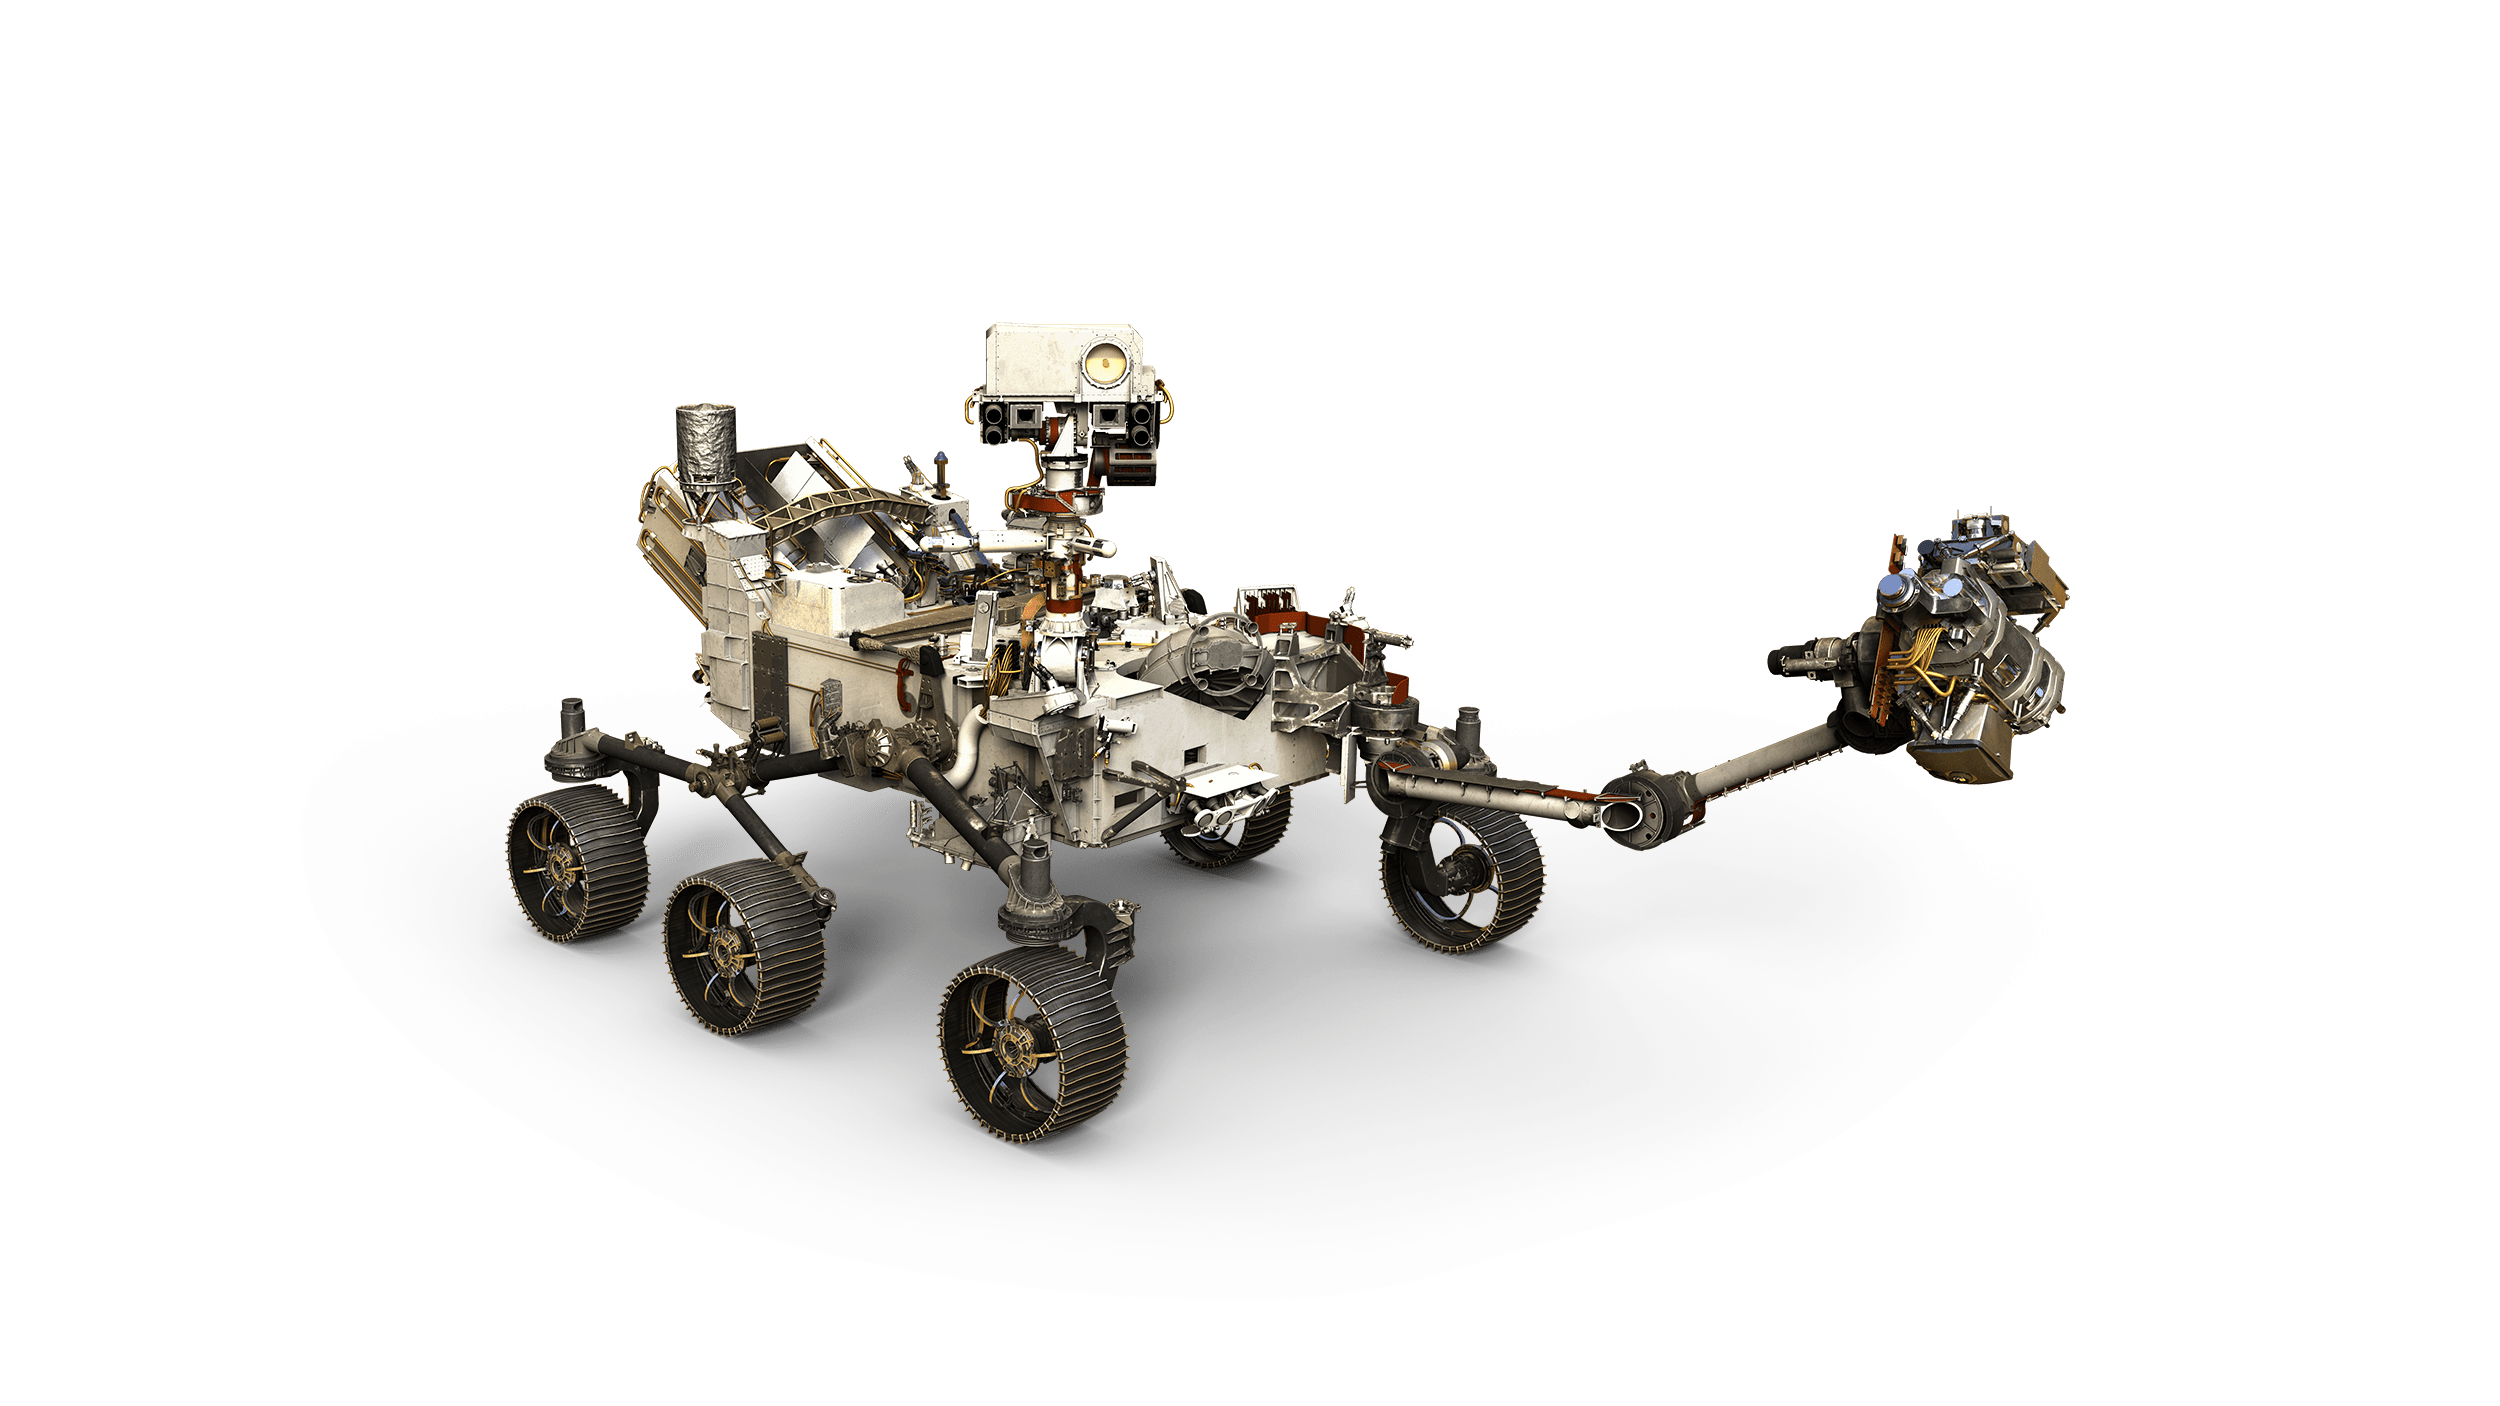 The Mars 2020 rover will be the most complicated rover ever put on the red planet.